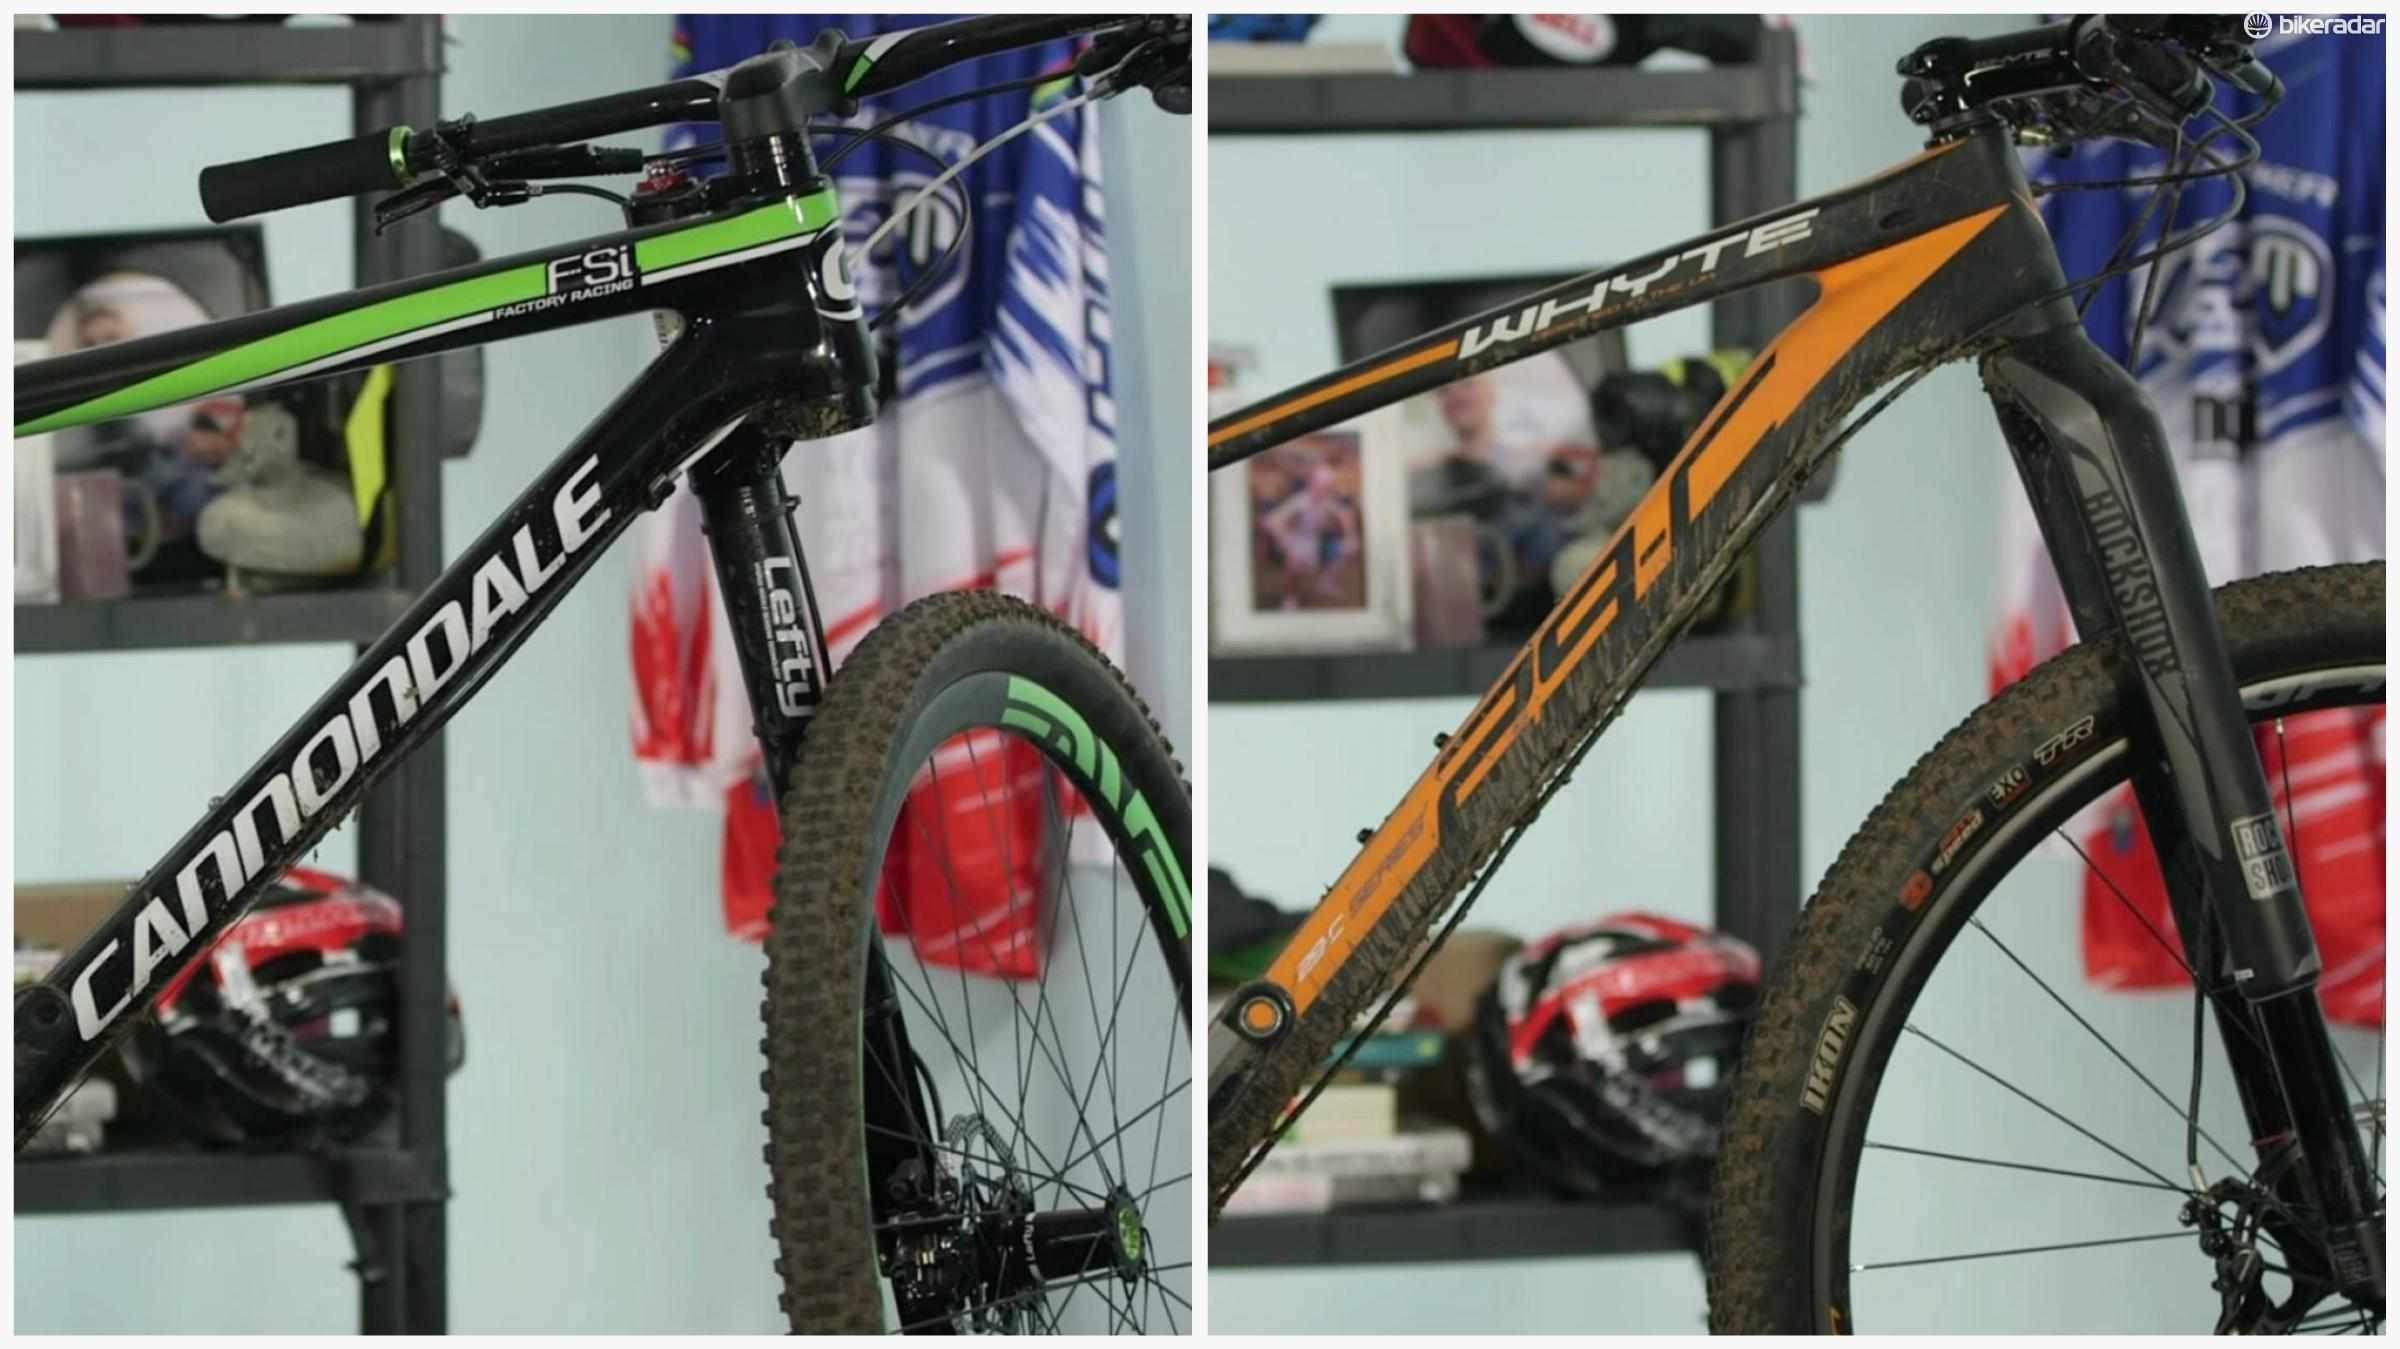 Tom Marvin and Jon Woodhouse take a look at the Cannondale F-Si Team and Whyte 29C Team cross-country race bikes